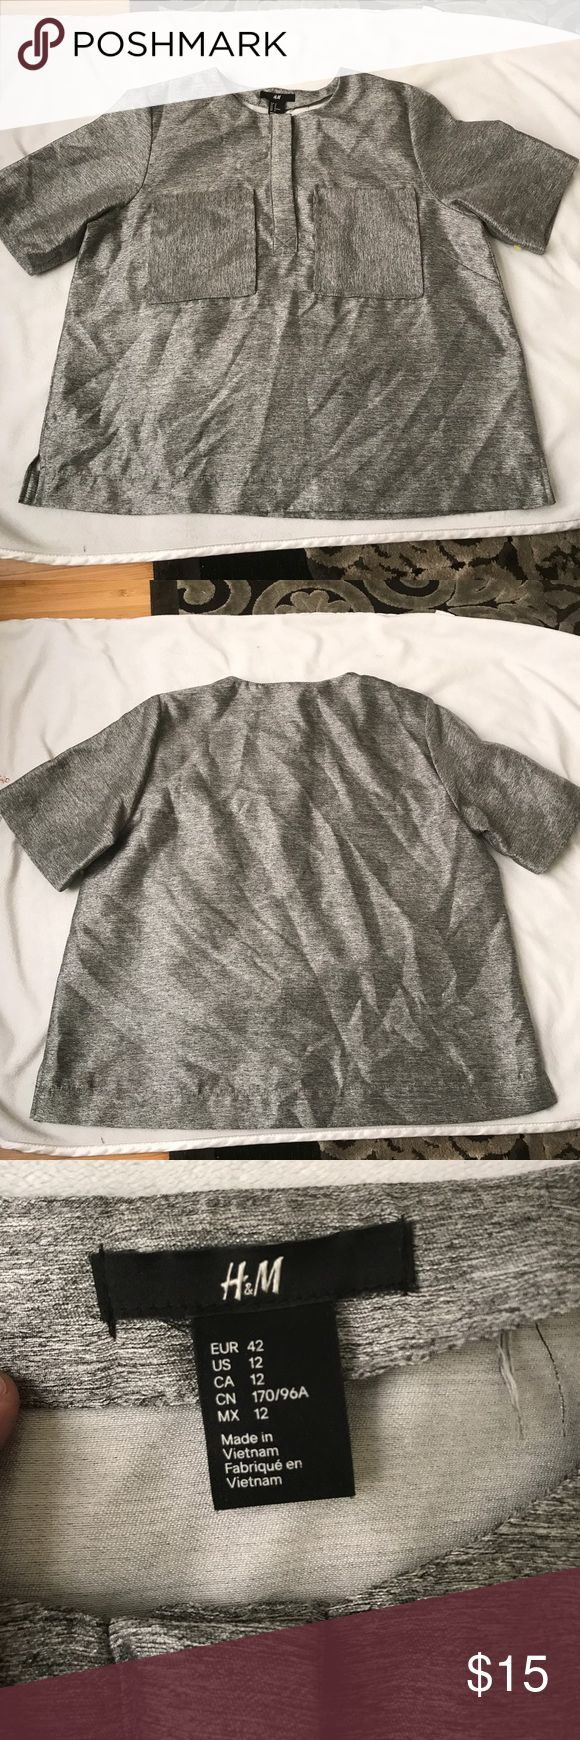 Metalic short sleeve top Light weight side slit half Button front short sleeve top. Fun metallic fabric dress up jeans or wear to the office! H&M Tops Blouses